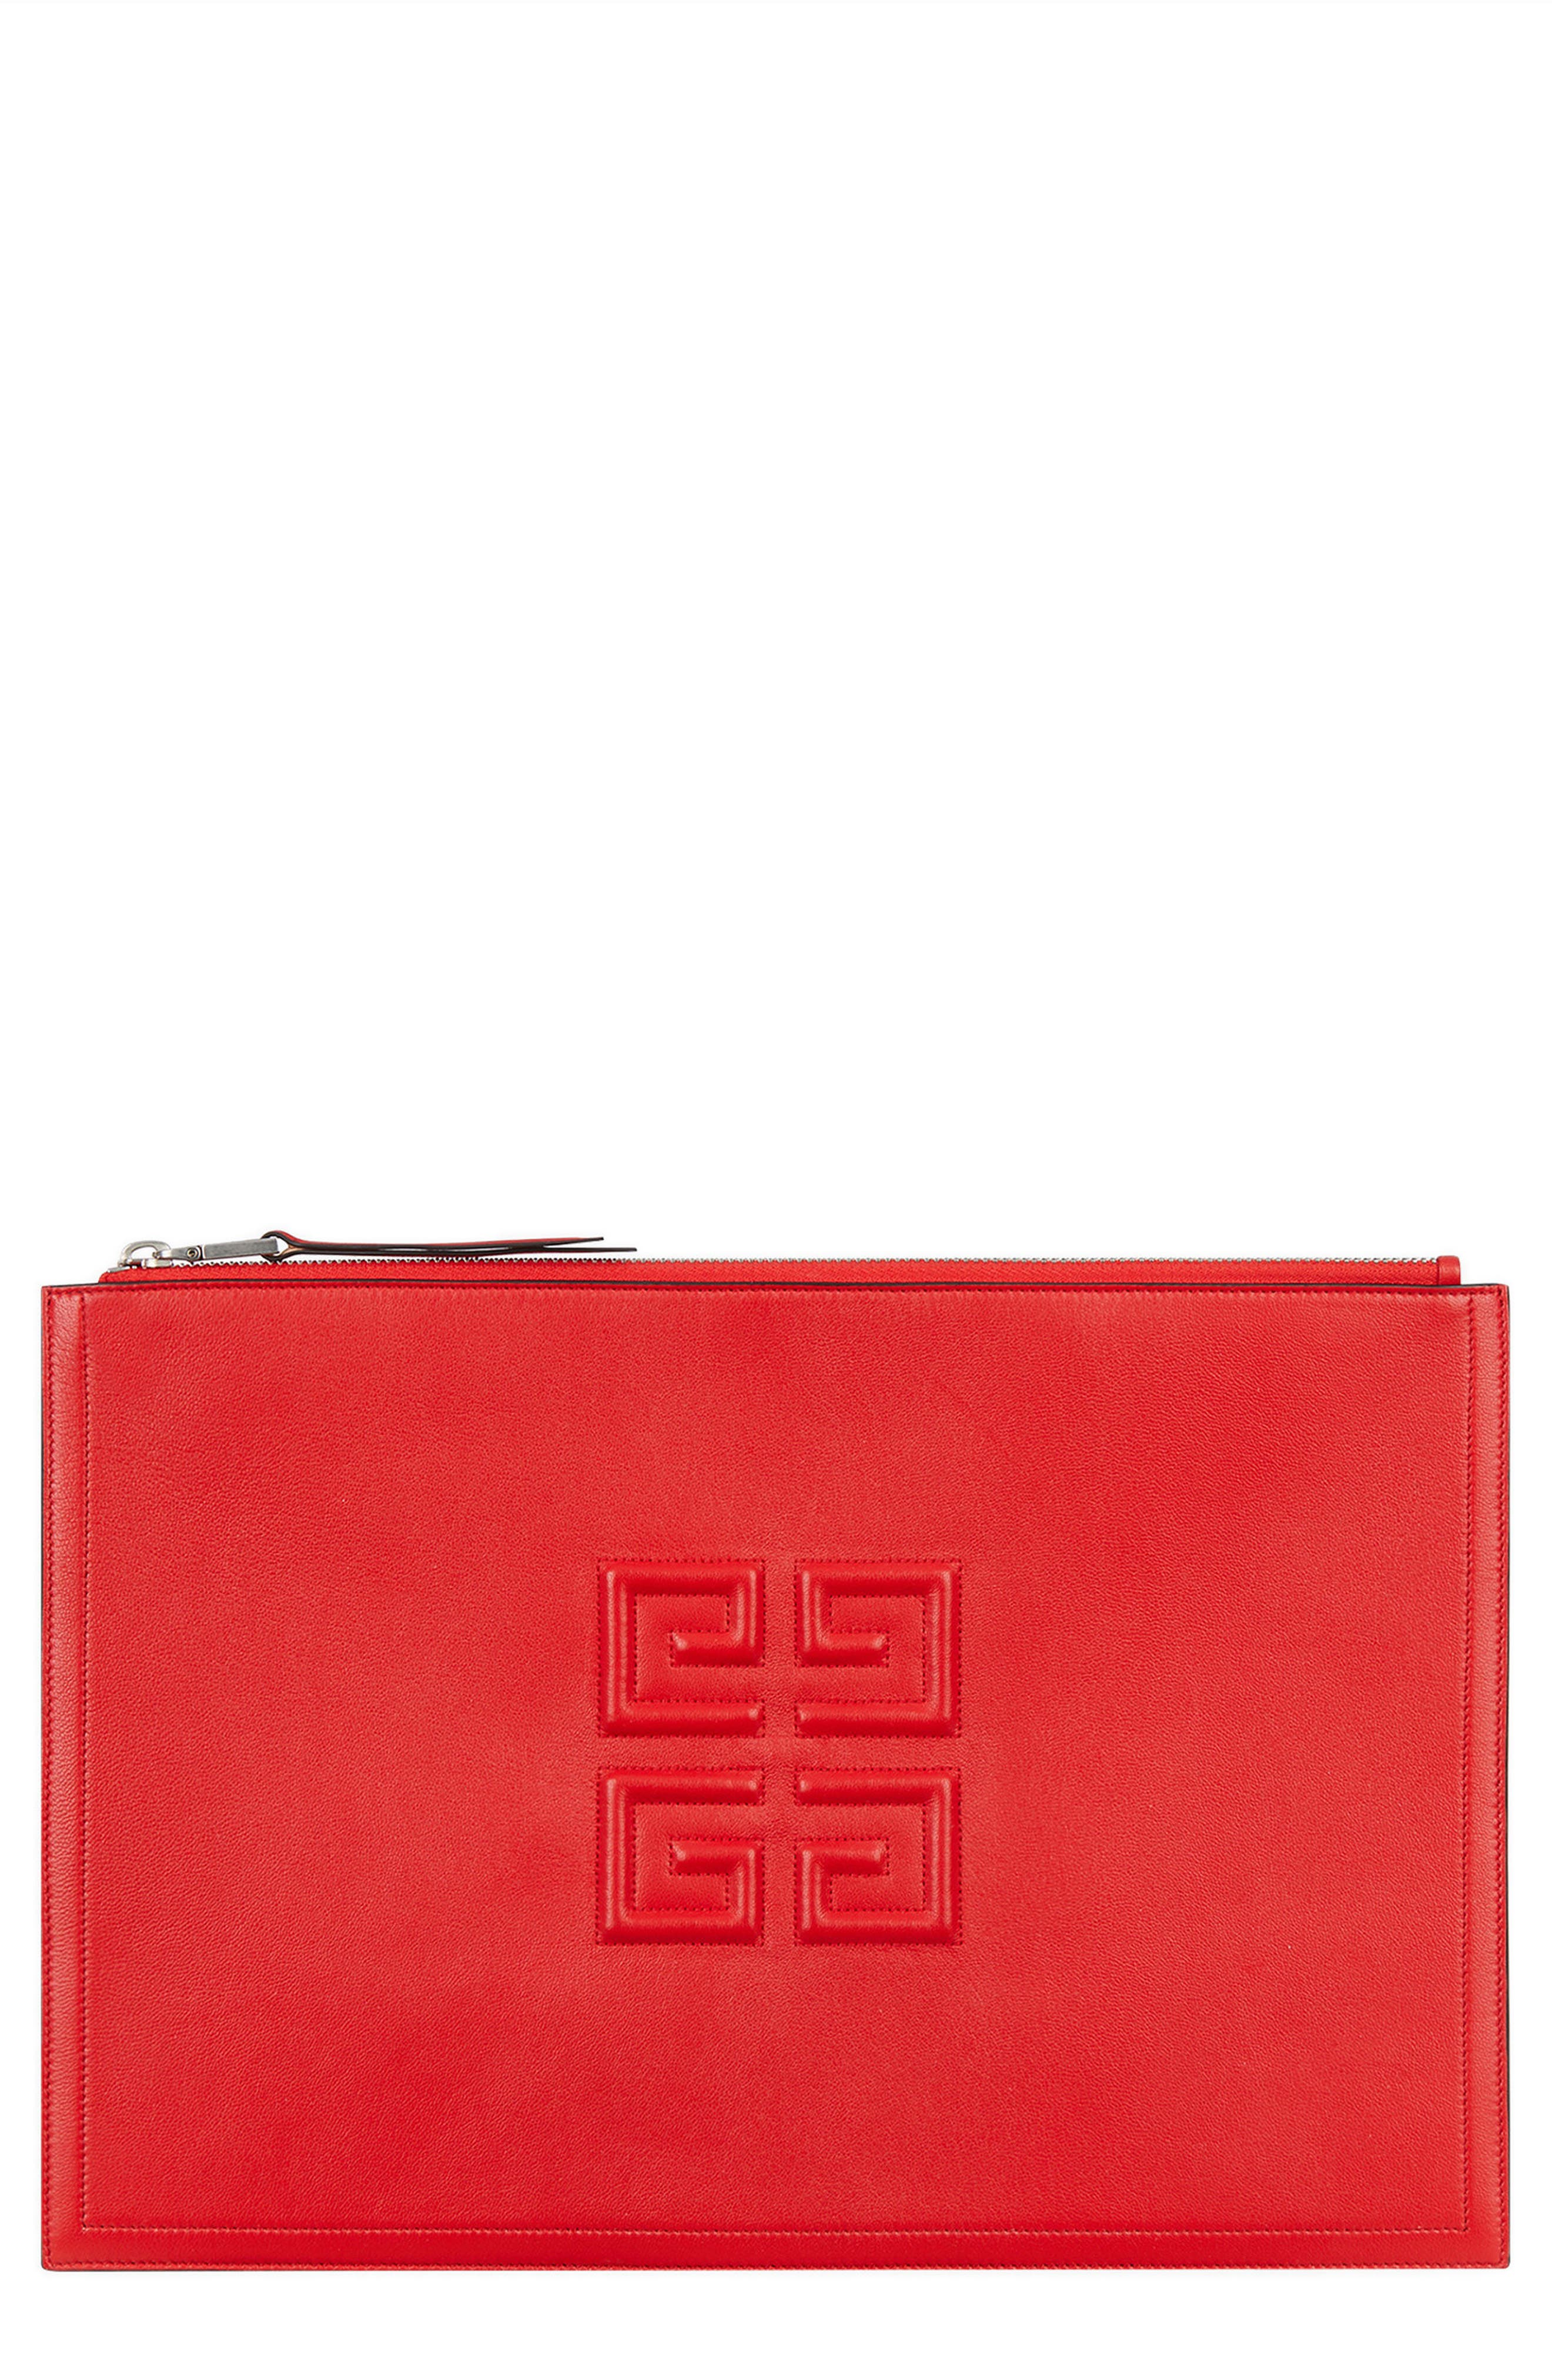 GIVENCHY Embossed Logo Lambskin Leather Pouch, Main, color, POPPY RED